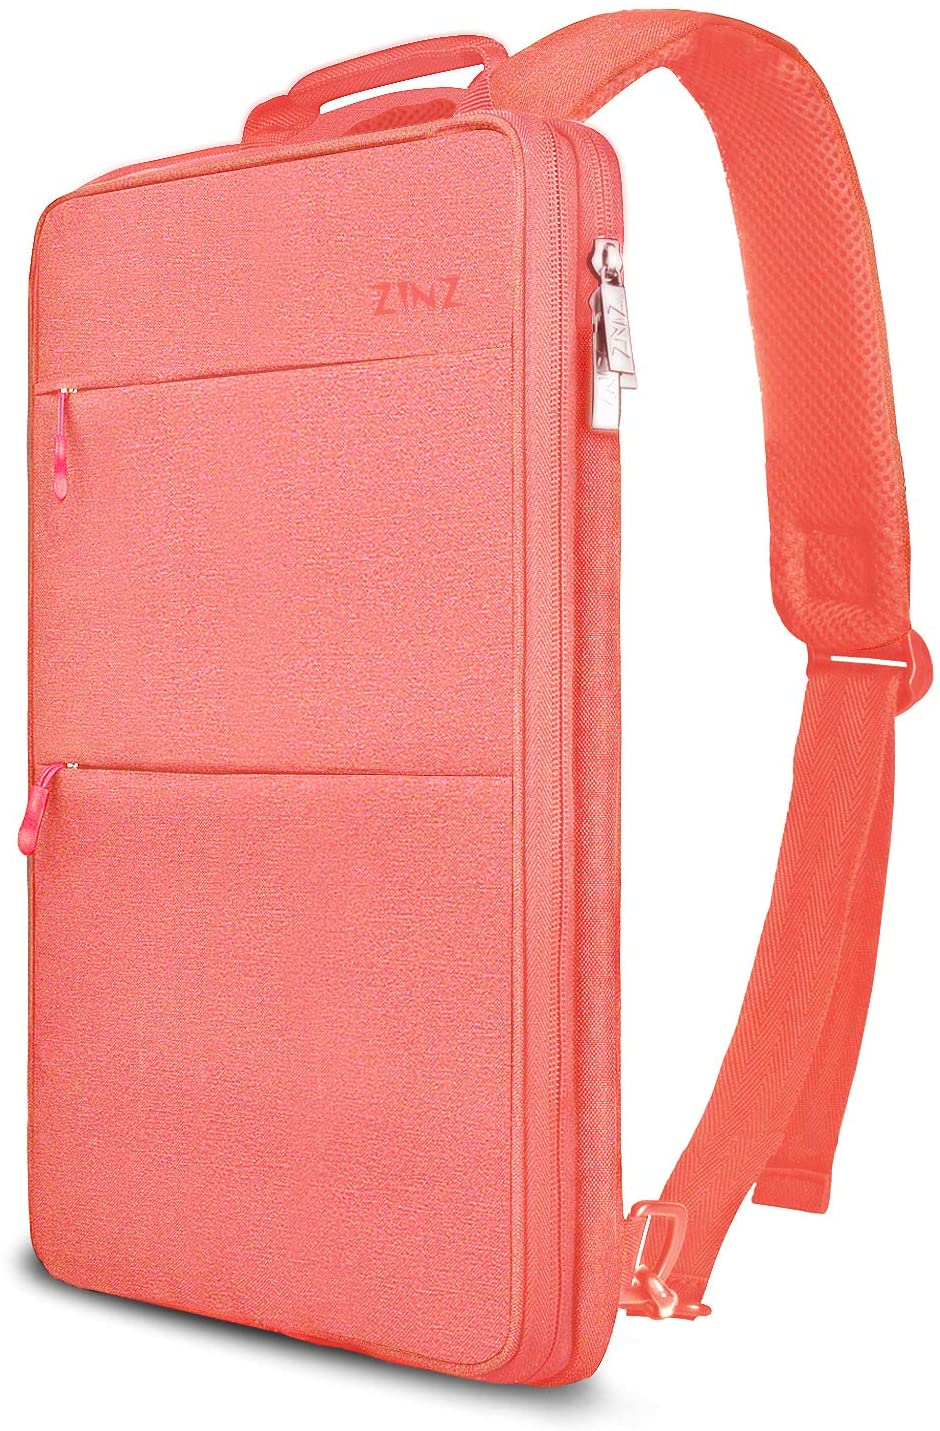 Slim & Expandable Laptop Backpack 15 15.6 16 Inch Sleeve with USB Port, Spill-Resistant Notebooks Bag Case for Most 14-16 Inch MacBooks Surface-Books Dell HP Lenovo Asus Computers, Pink